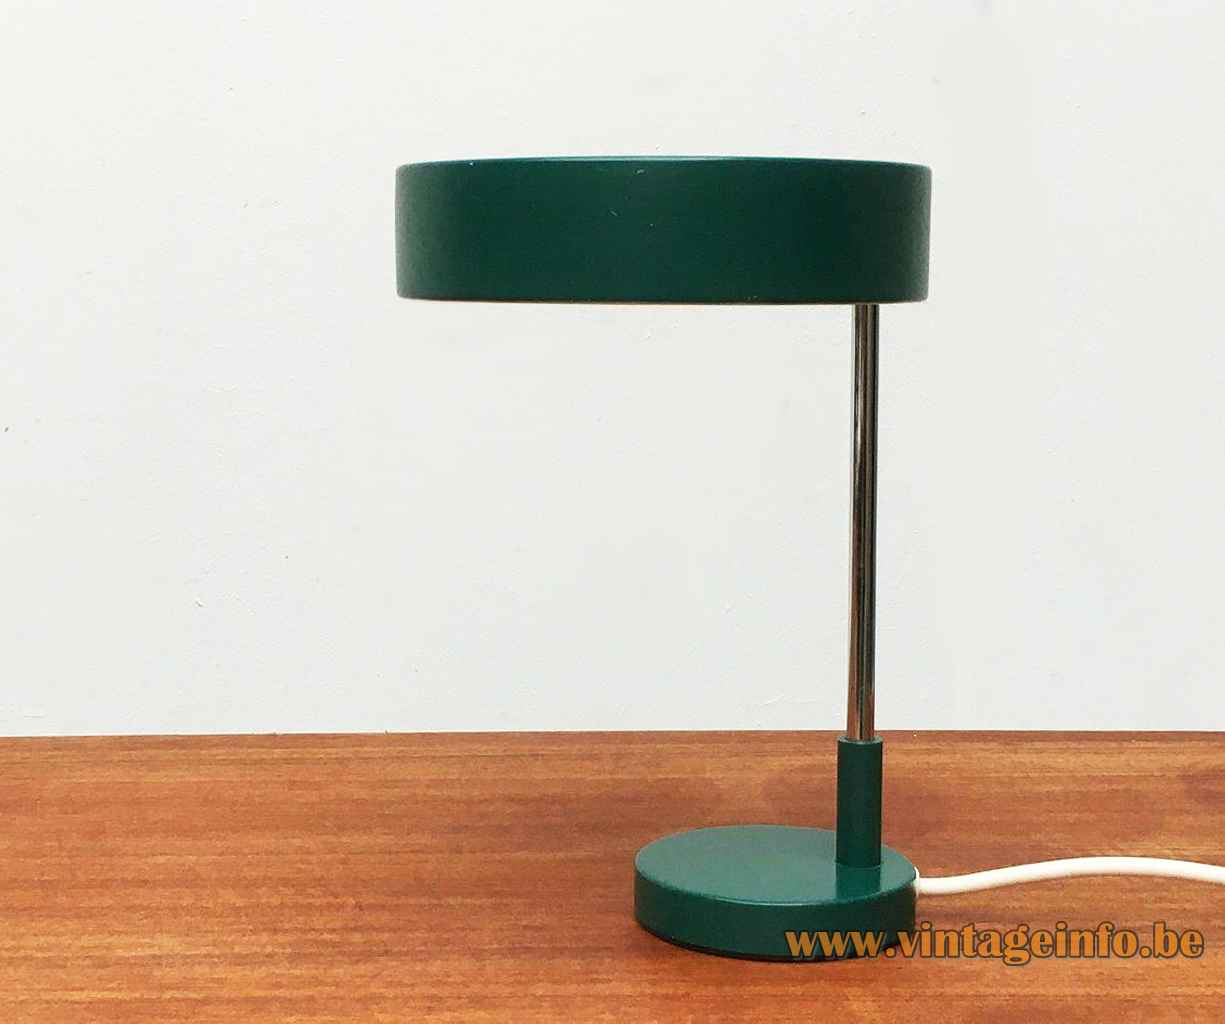 Kaiser Leuchten desk lamp 6890 design: Klaus Hempel round green base & lampshade chrome rod 1960s 1970s